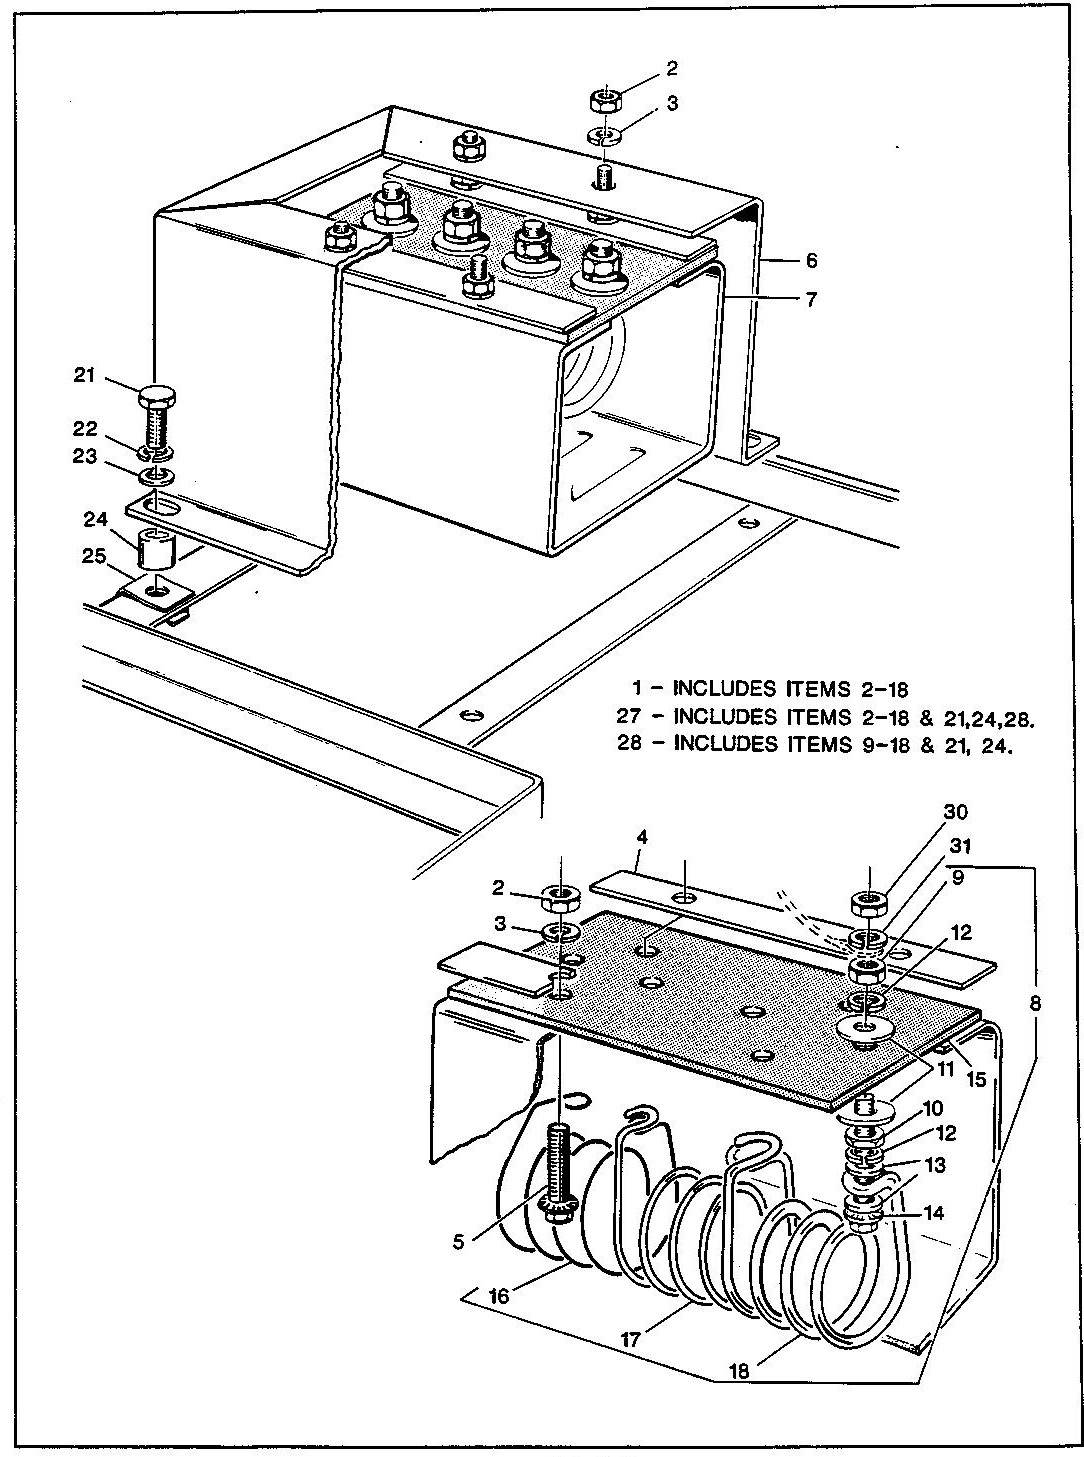 37_1989-1991 Electric Resistor Coil and Housing Assembly